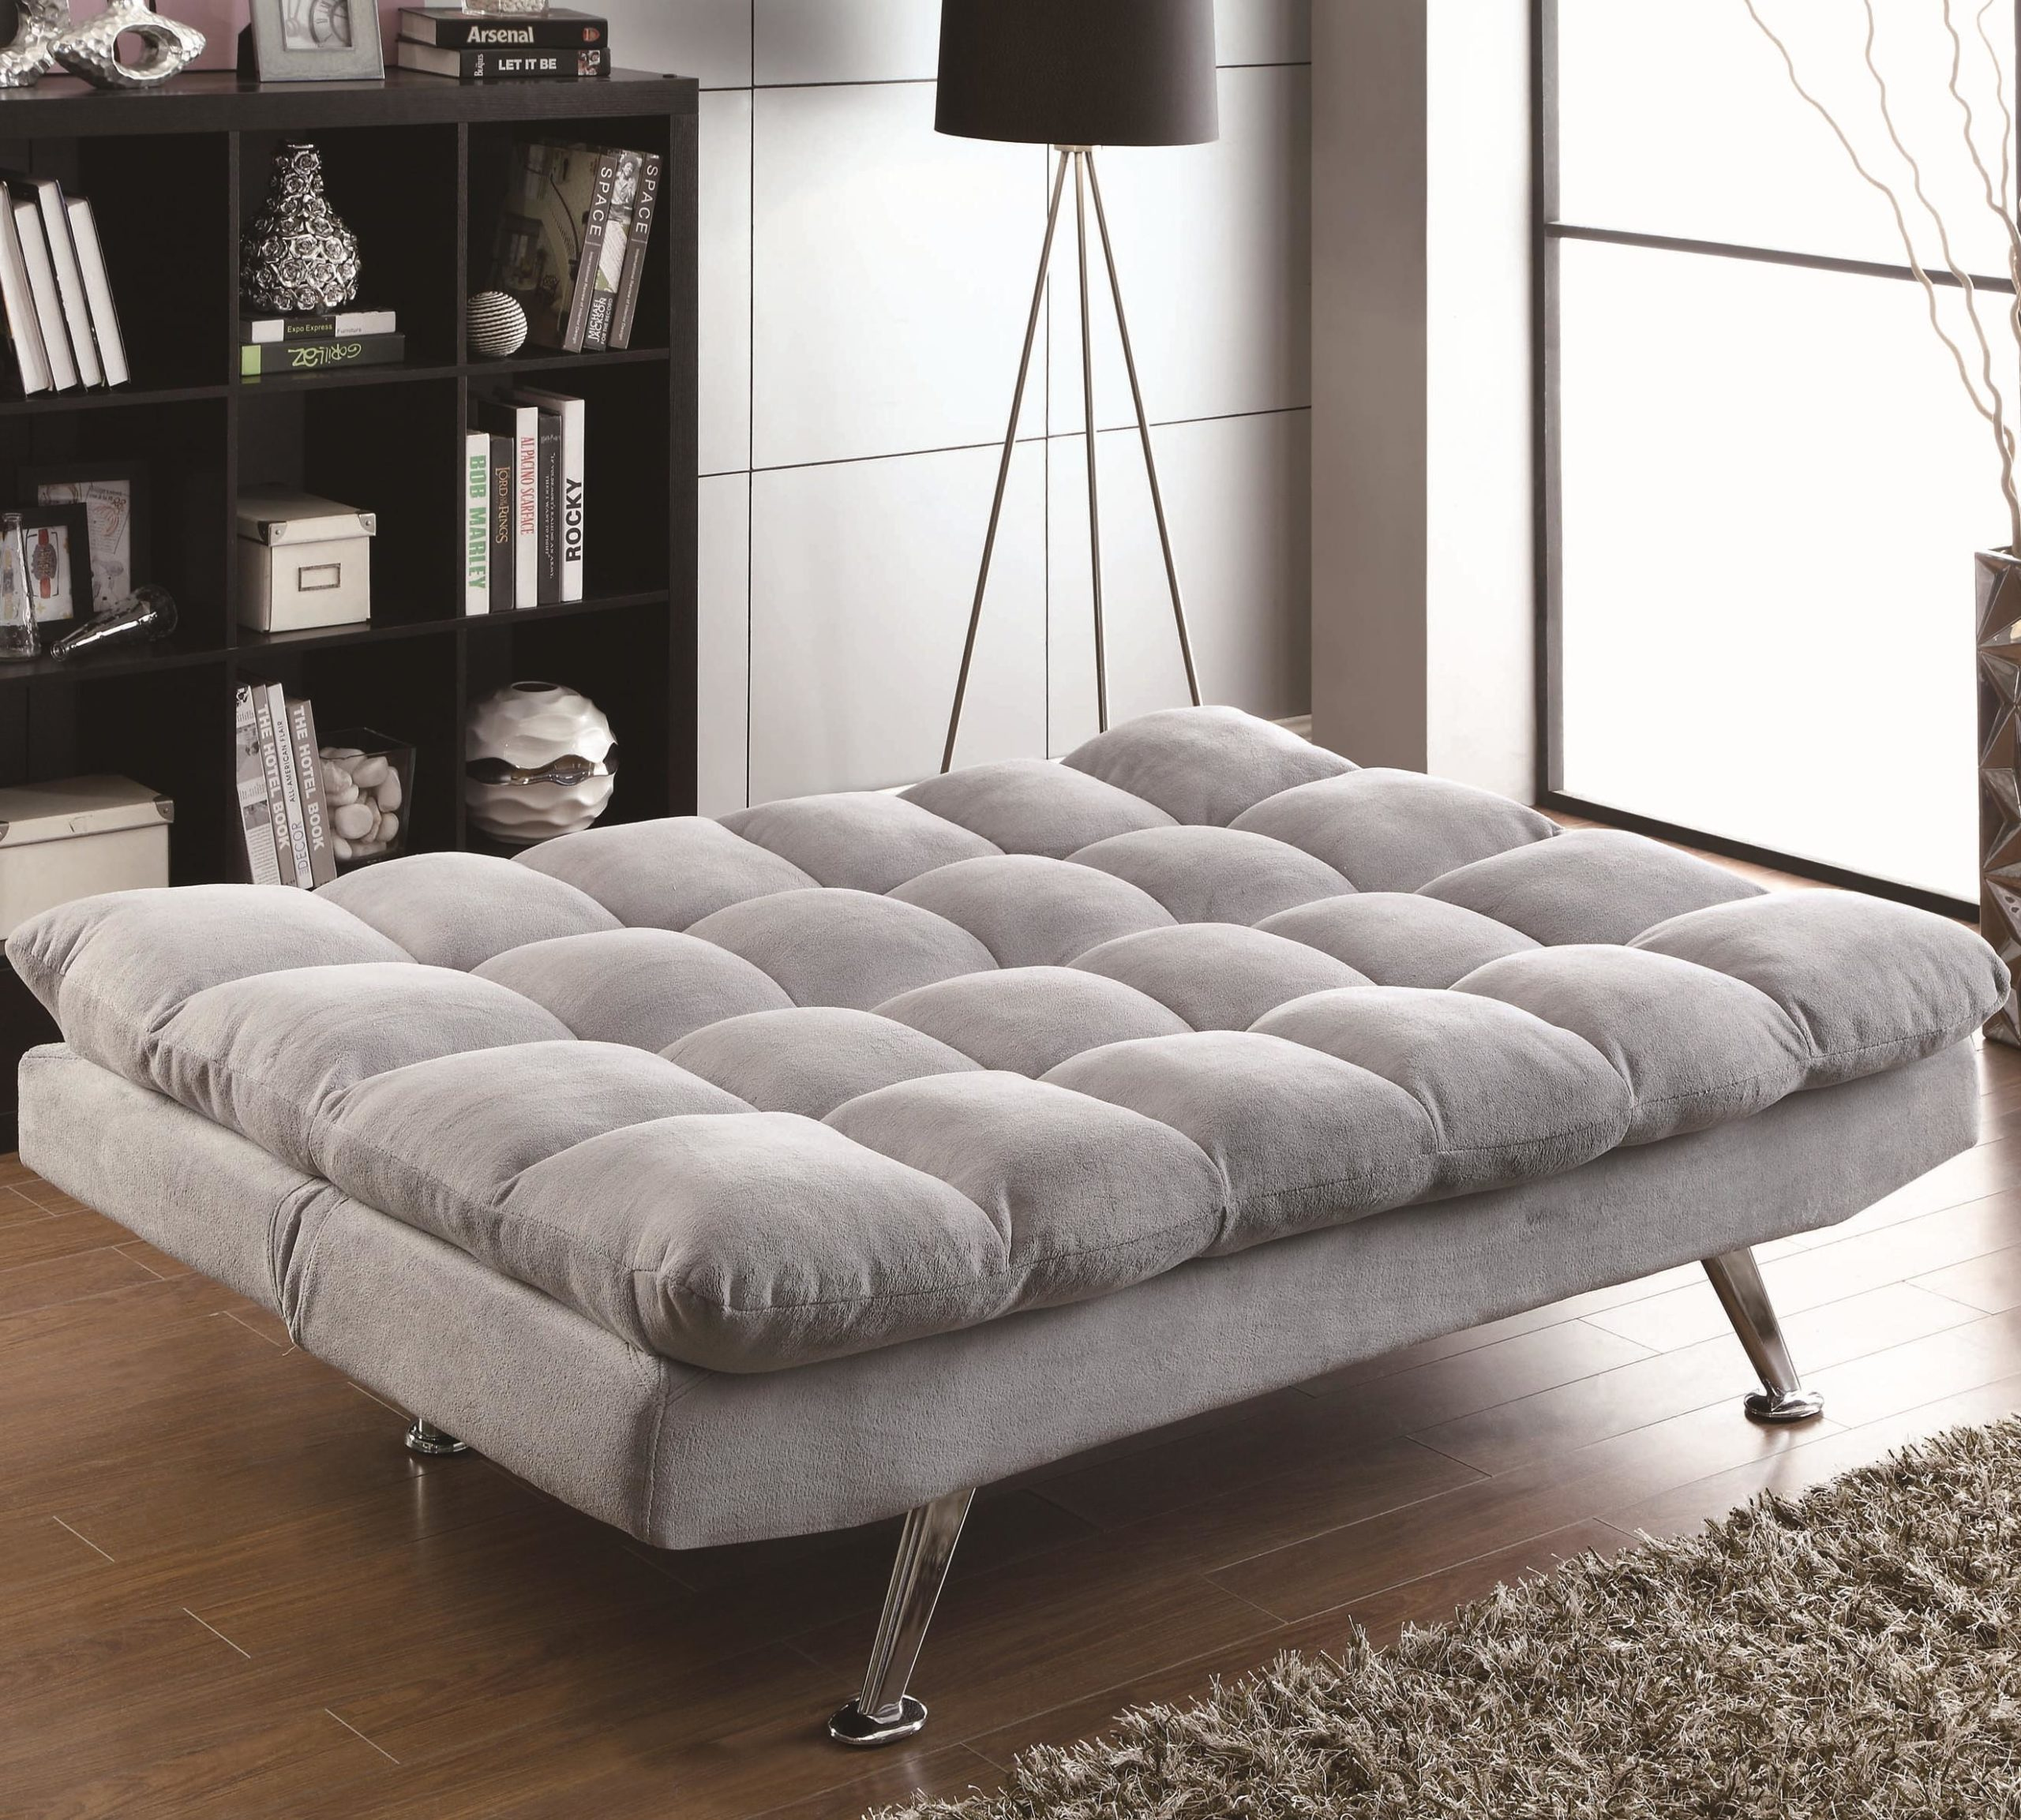 Sofa Bed in Down Position